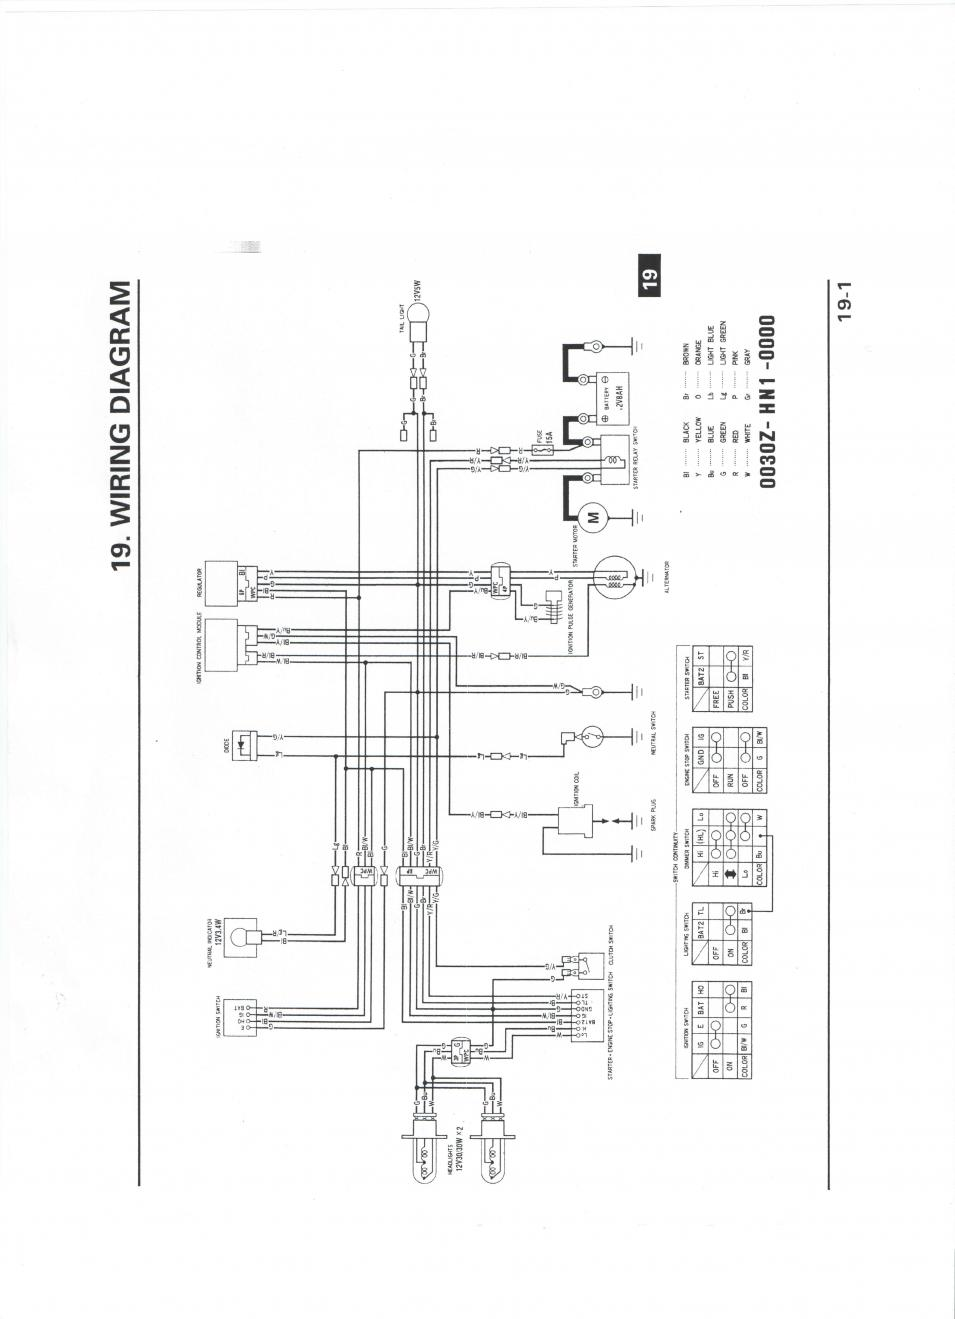 200 amp battery charger wiring diagram